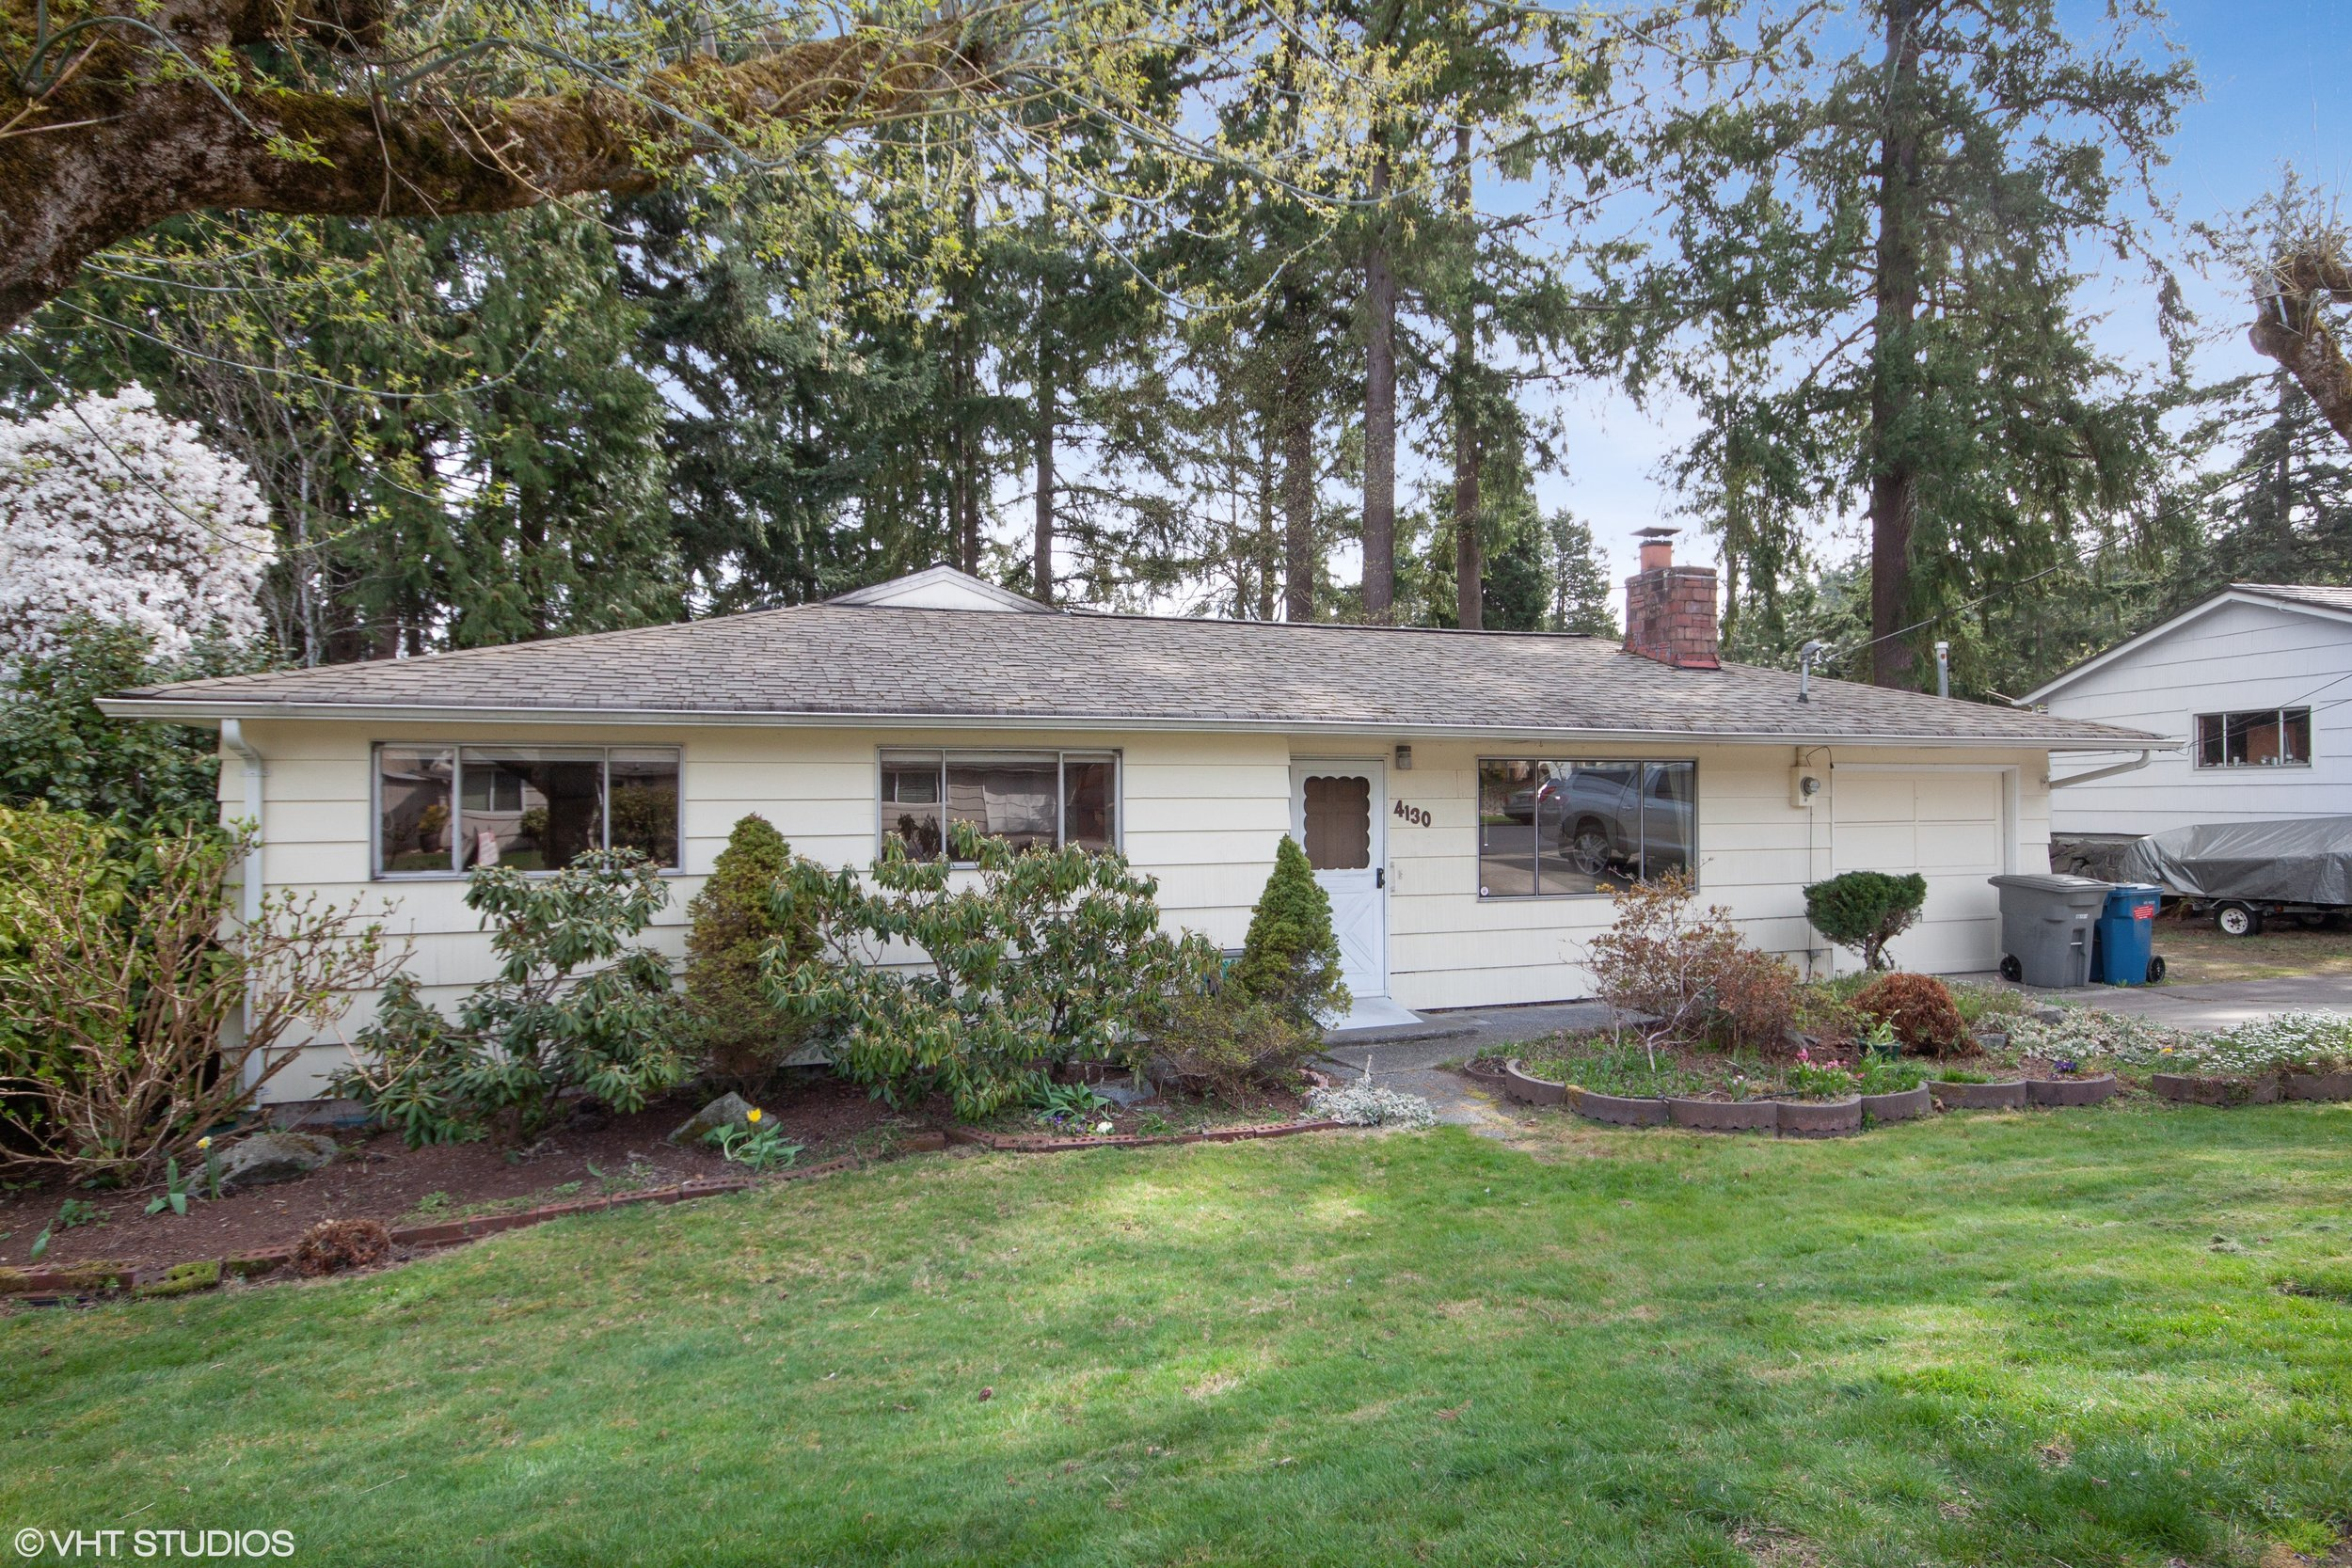 Sold! Bellevue-Eastgate